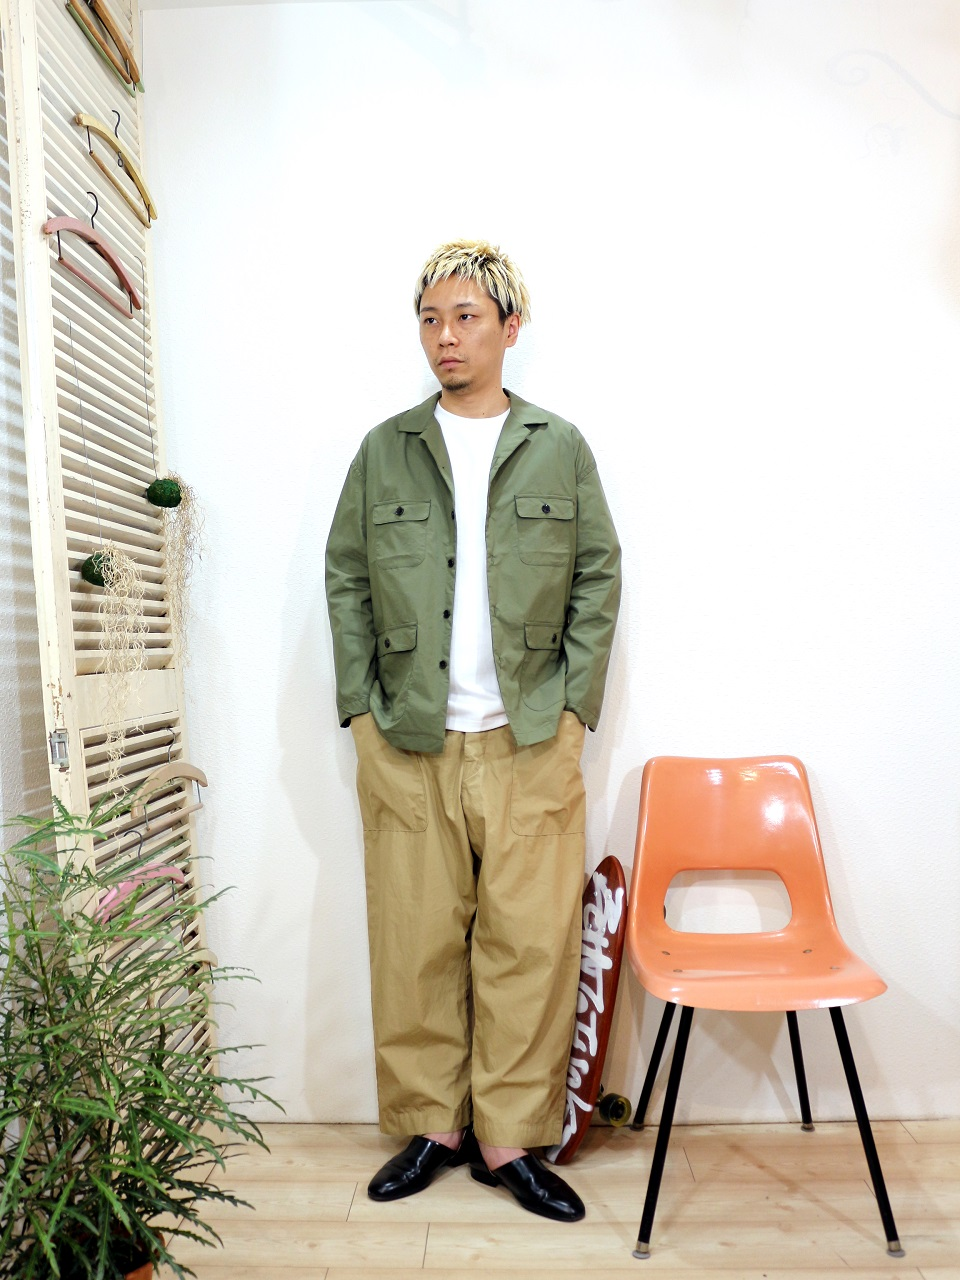 outer/MANUAL ALPHABET-SAFARI SHT JACKET(SIZE 1)tee/modem design-10.2oz PLAIN S/S TEE(SIZE 2)pants/odorlesstasteless-WEATHER DUCK(SIZE 02)を使ったコーディネート